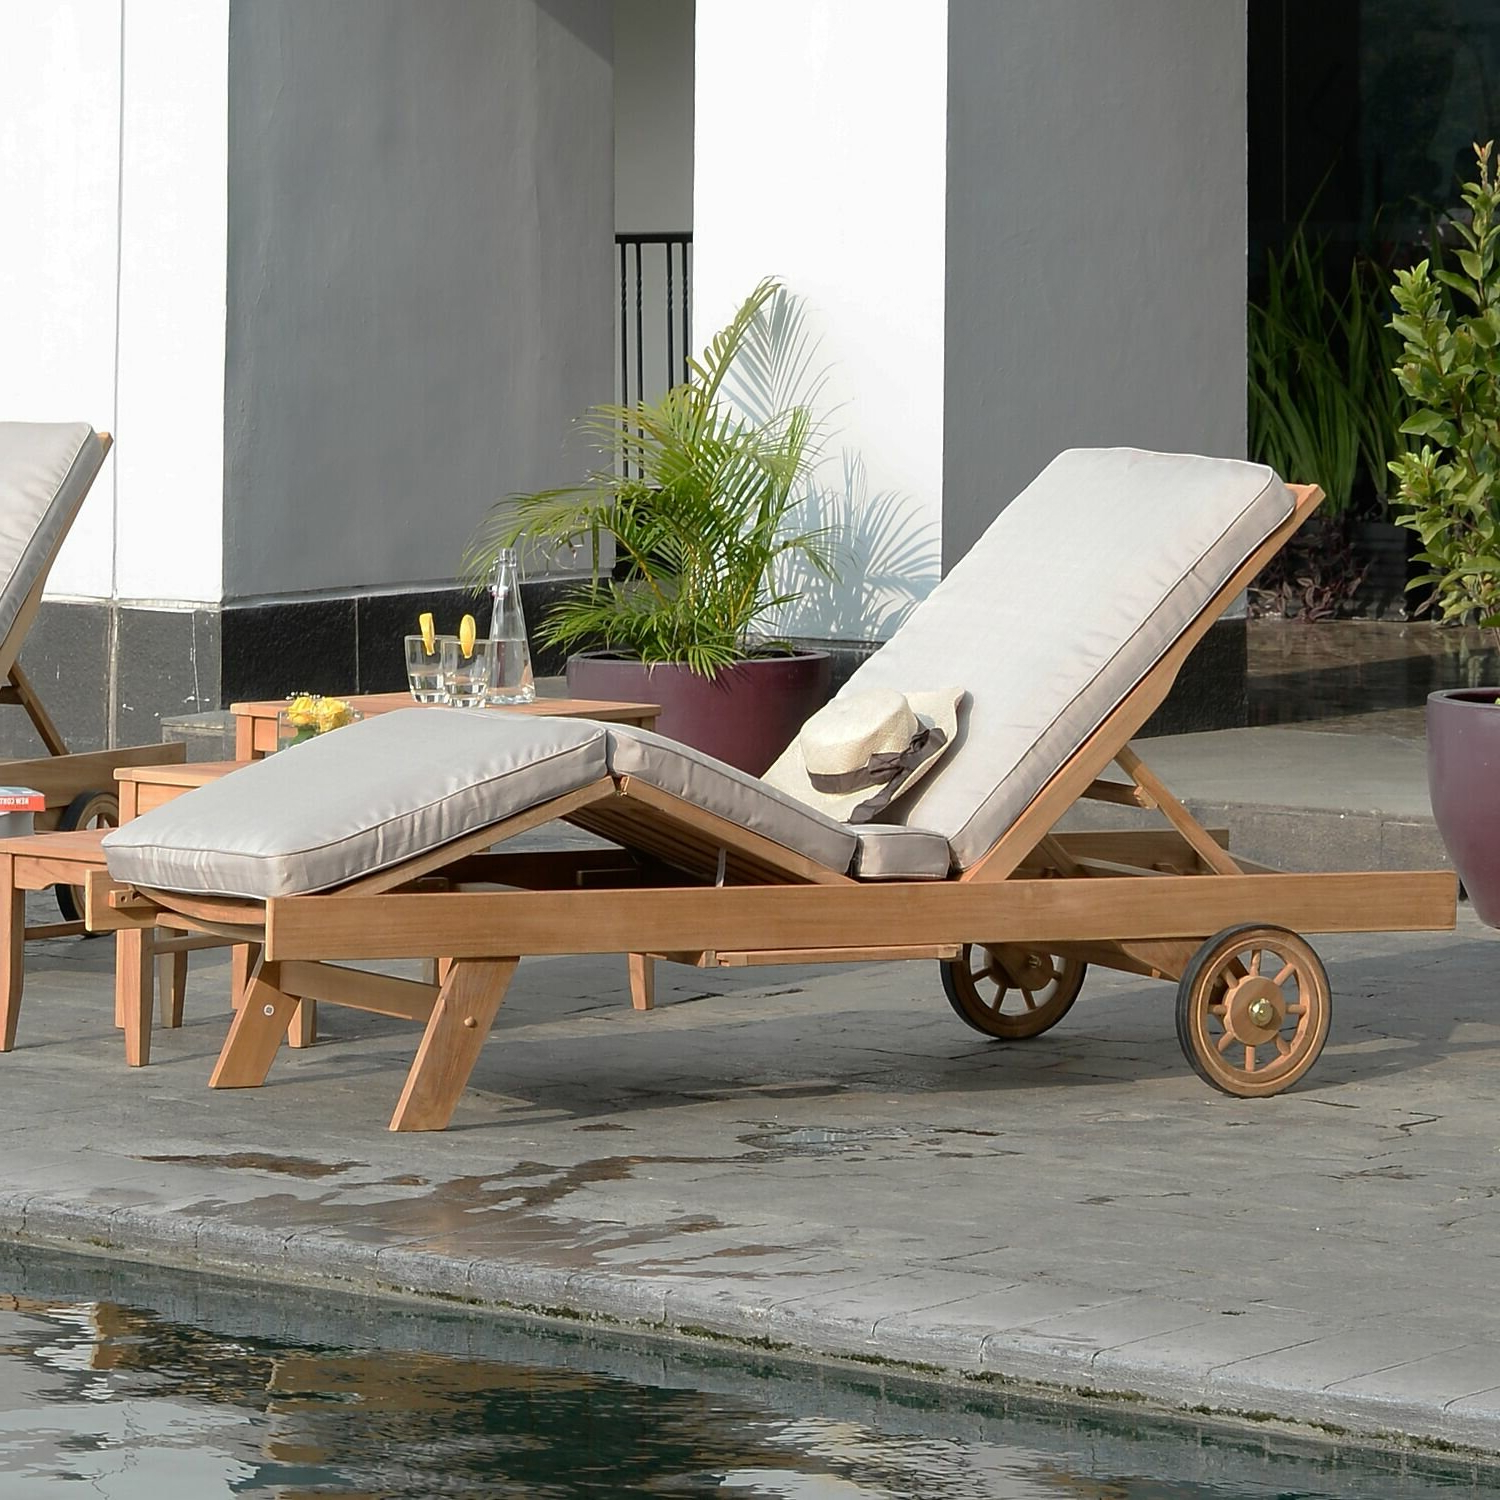 Eucalyptus Teak Finish Outdoor Chaise Loungers With Cushion Throughout Famous Summerton Reclining Teak Chaise Lounge With Cushion (View 15 of 25)